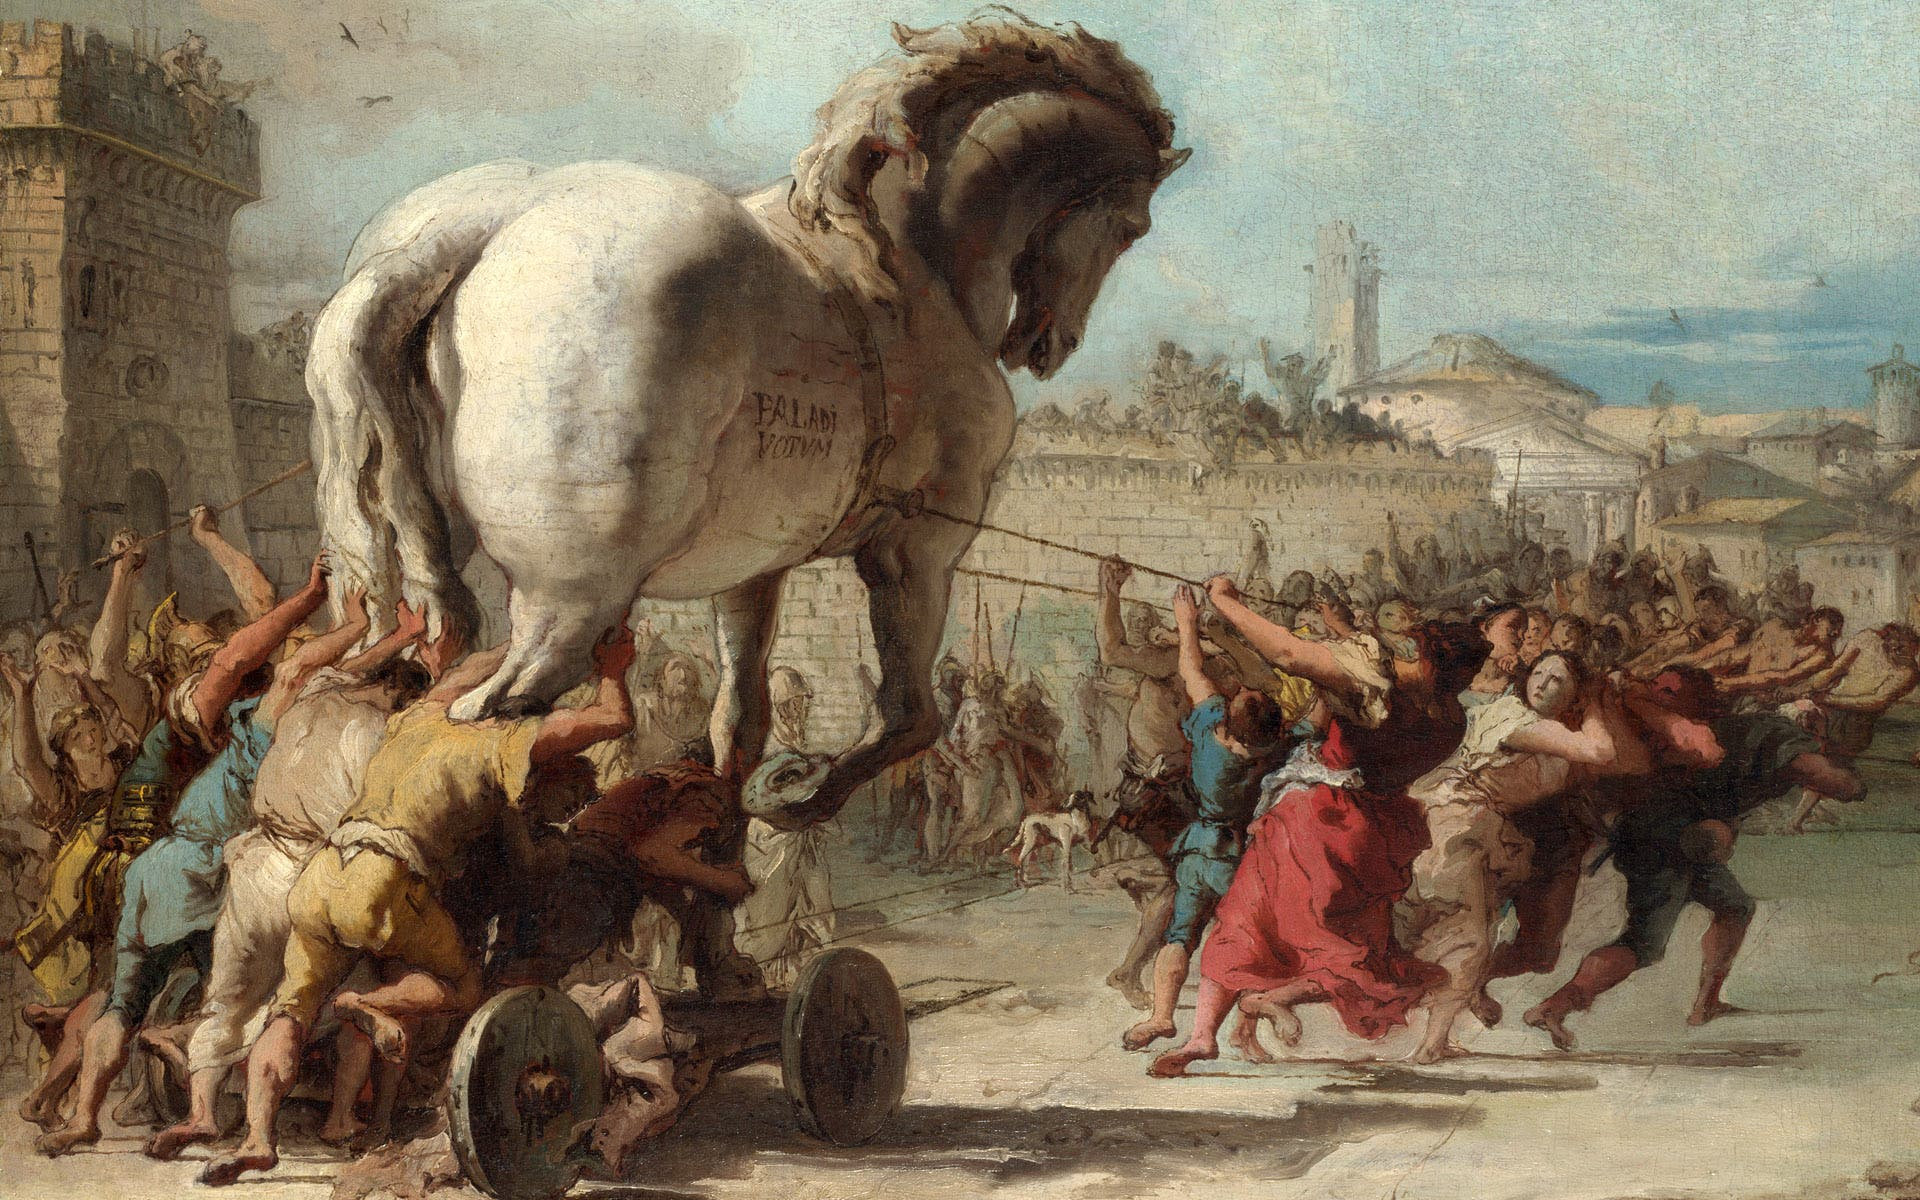 Full title: The Procession of the Trojan Horse into Troy Artist: Giovanni Domenico Tiepolo Date made: about 1760 Source: http://www.nationalgalleryimages.co.uk/ Contact: picture.library@nationalgallery.co.uk Copyright (C) The National Gallery, London